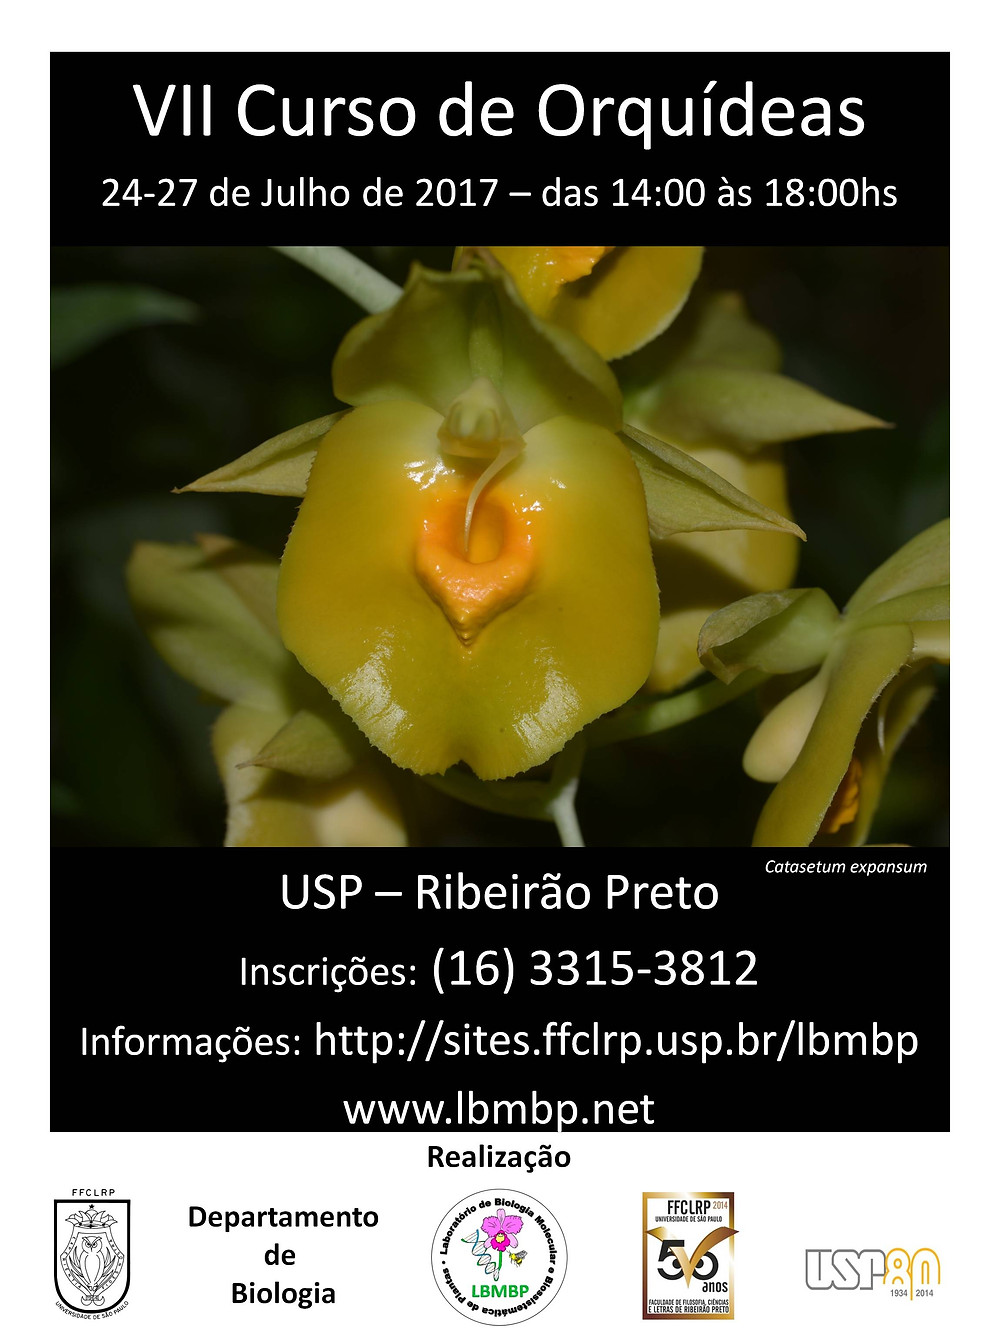 VII Orchid Course